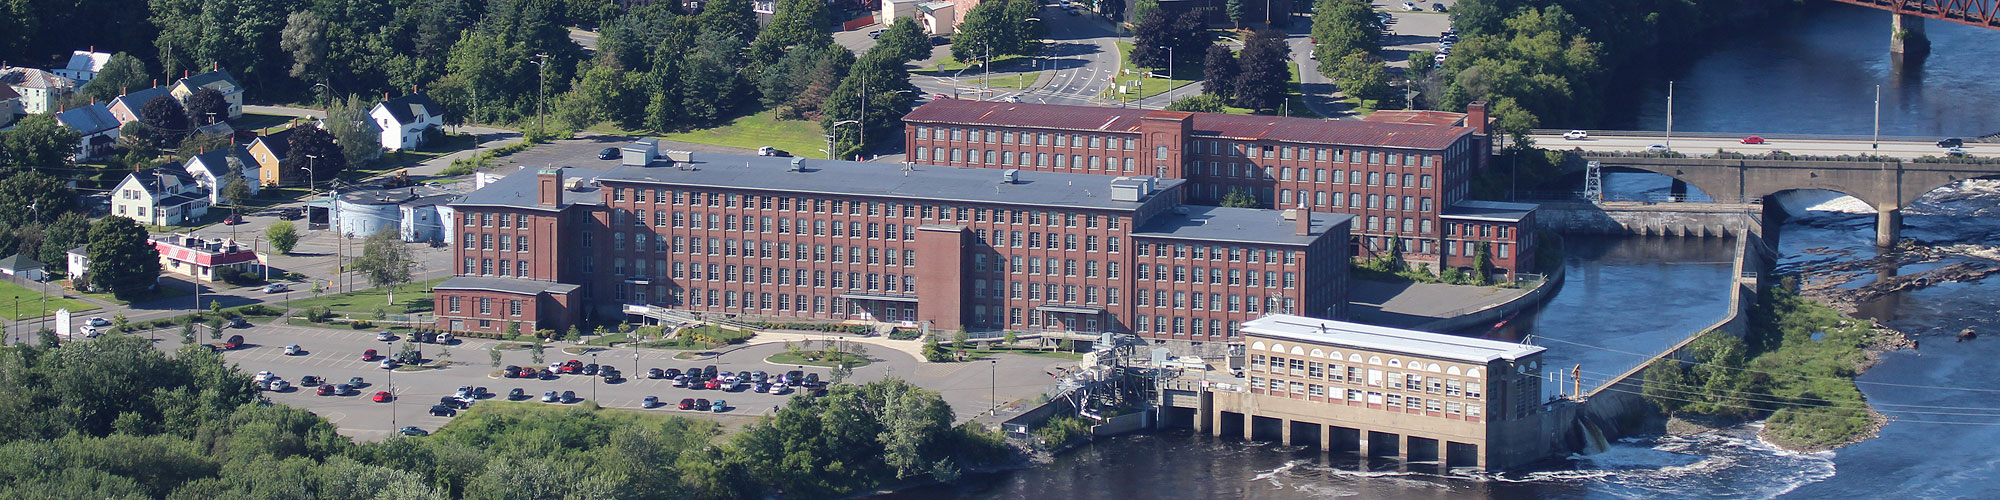 Hotels In Waterville Maine Area